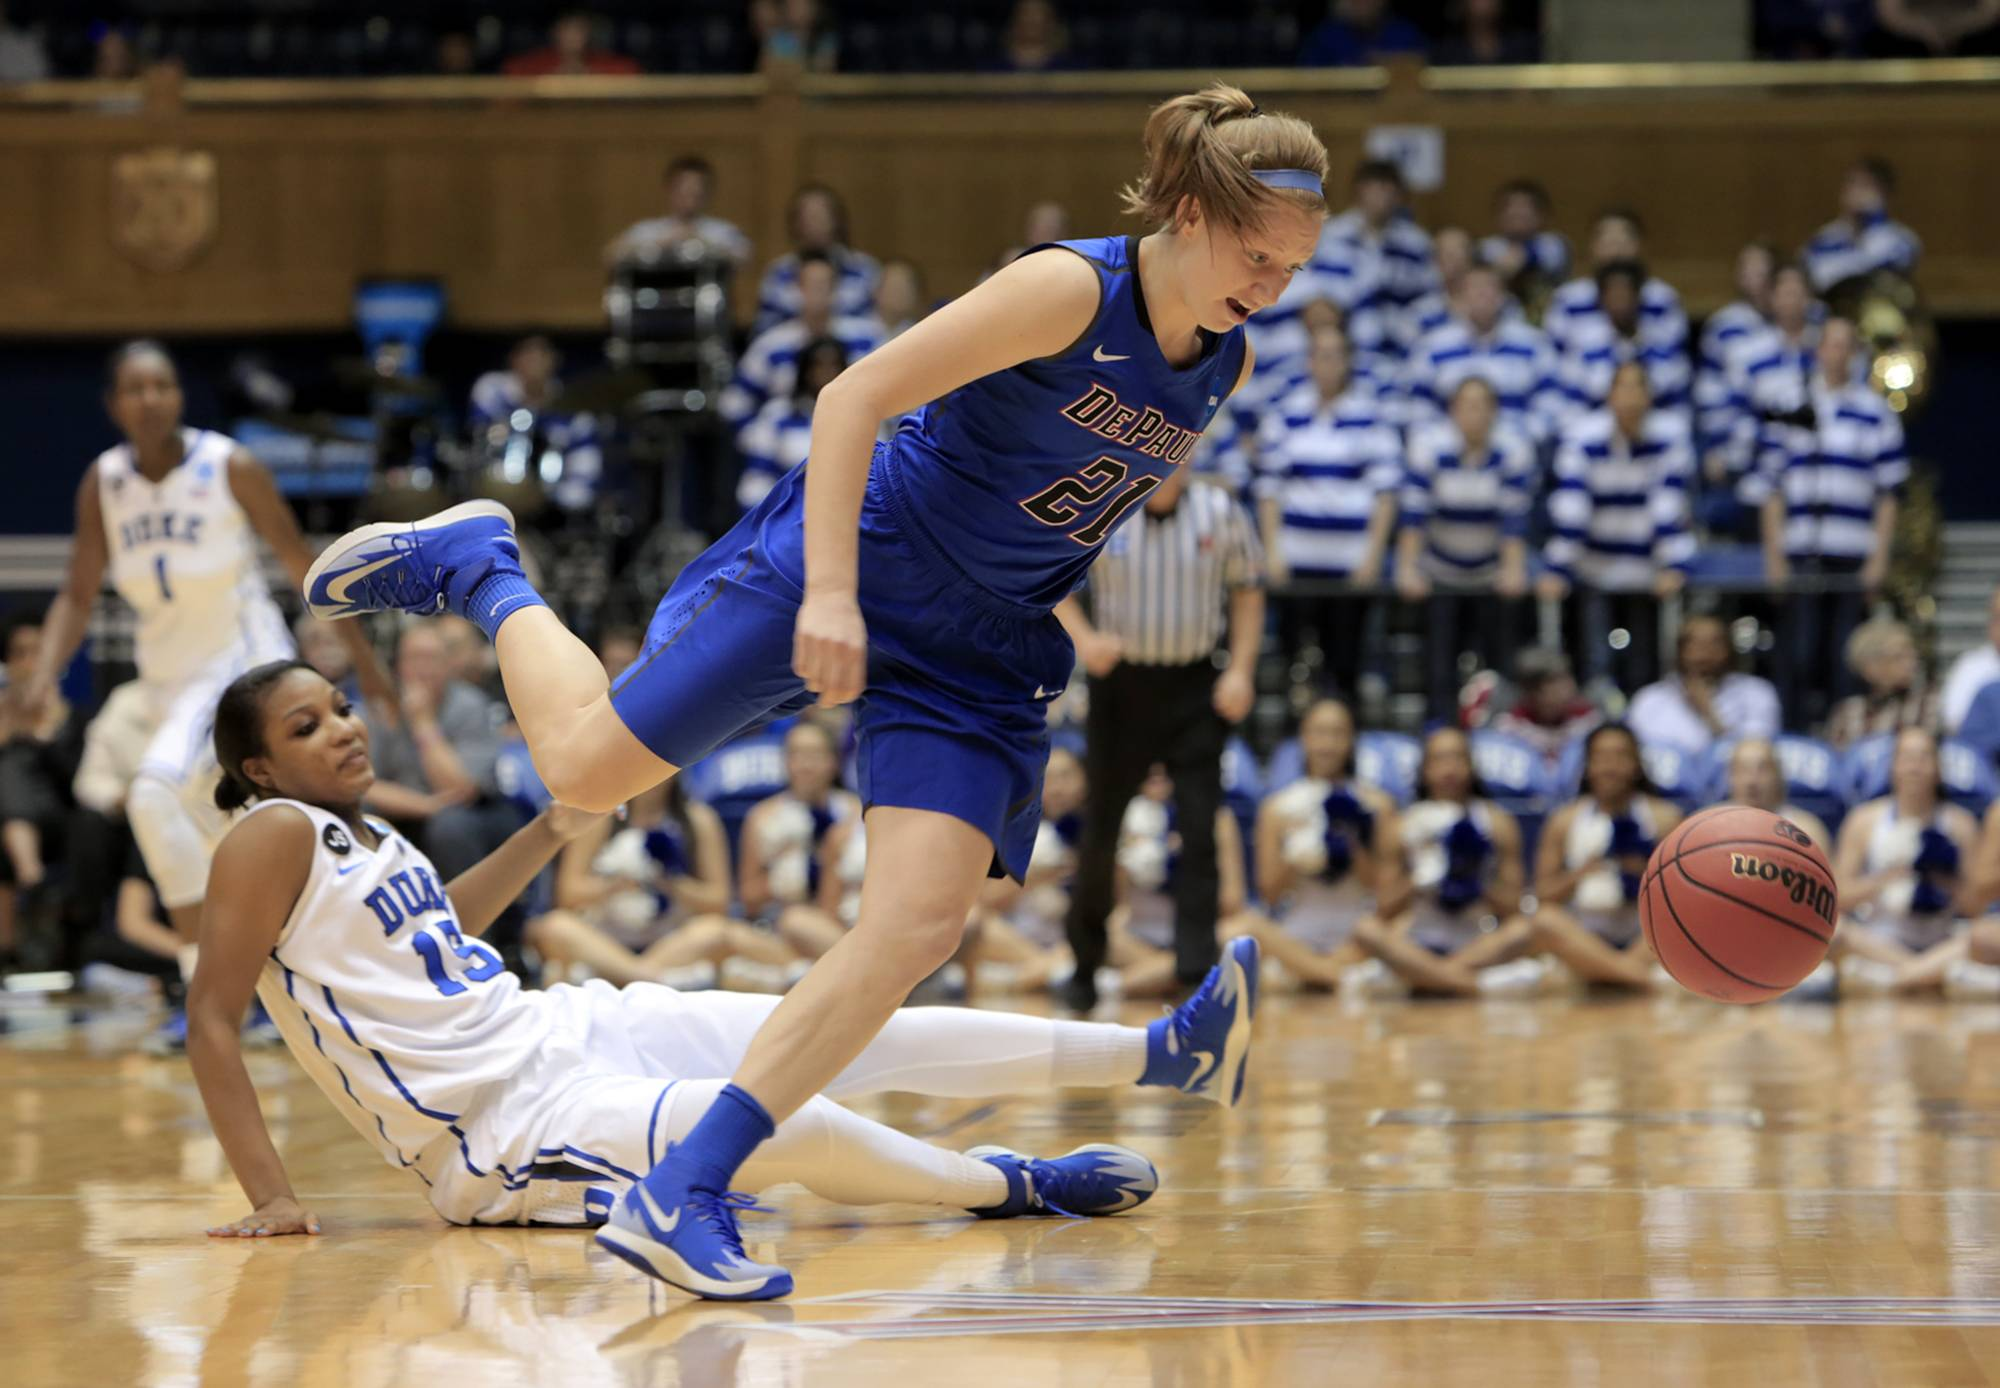 DePaul's Megan Rogowski, game-high scorer with 22 points, beats Duke's Richa Jackson, on floor, to a loose ball during the second half of Duke's 74-65 loss in their second-round game in the NCAA basketball tournament in Durham, N.C., Monday, March 24, 2014. (AP Photo/Ted Richardson)